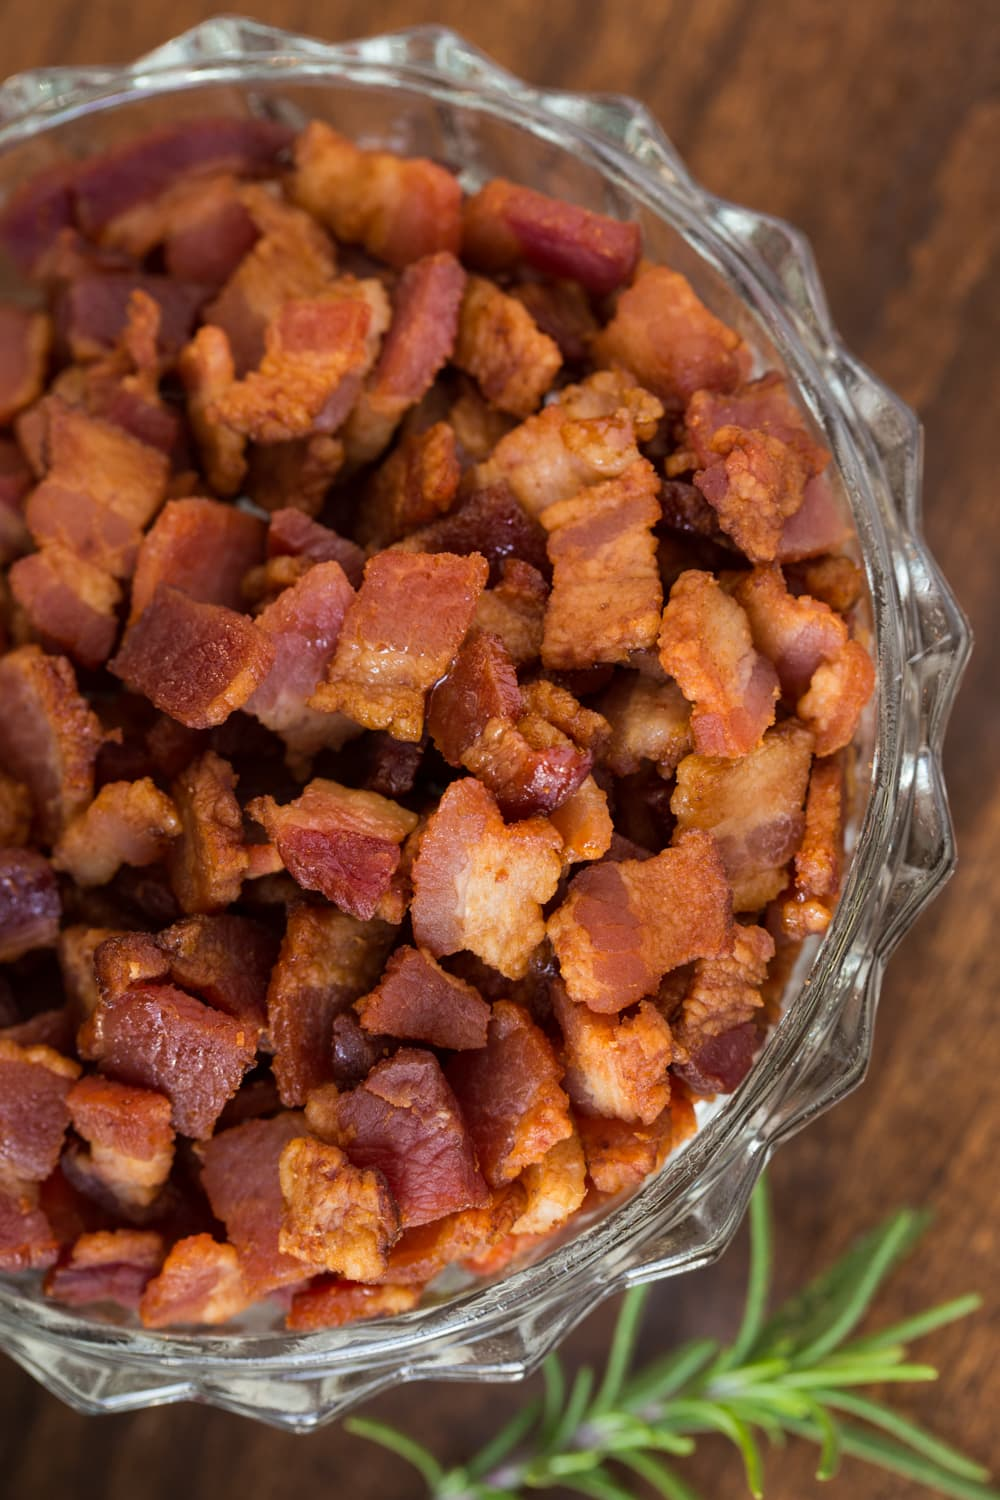 Close up view of diced, cooked bacon